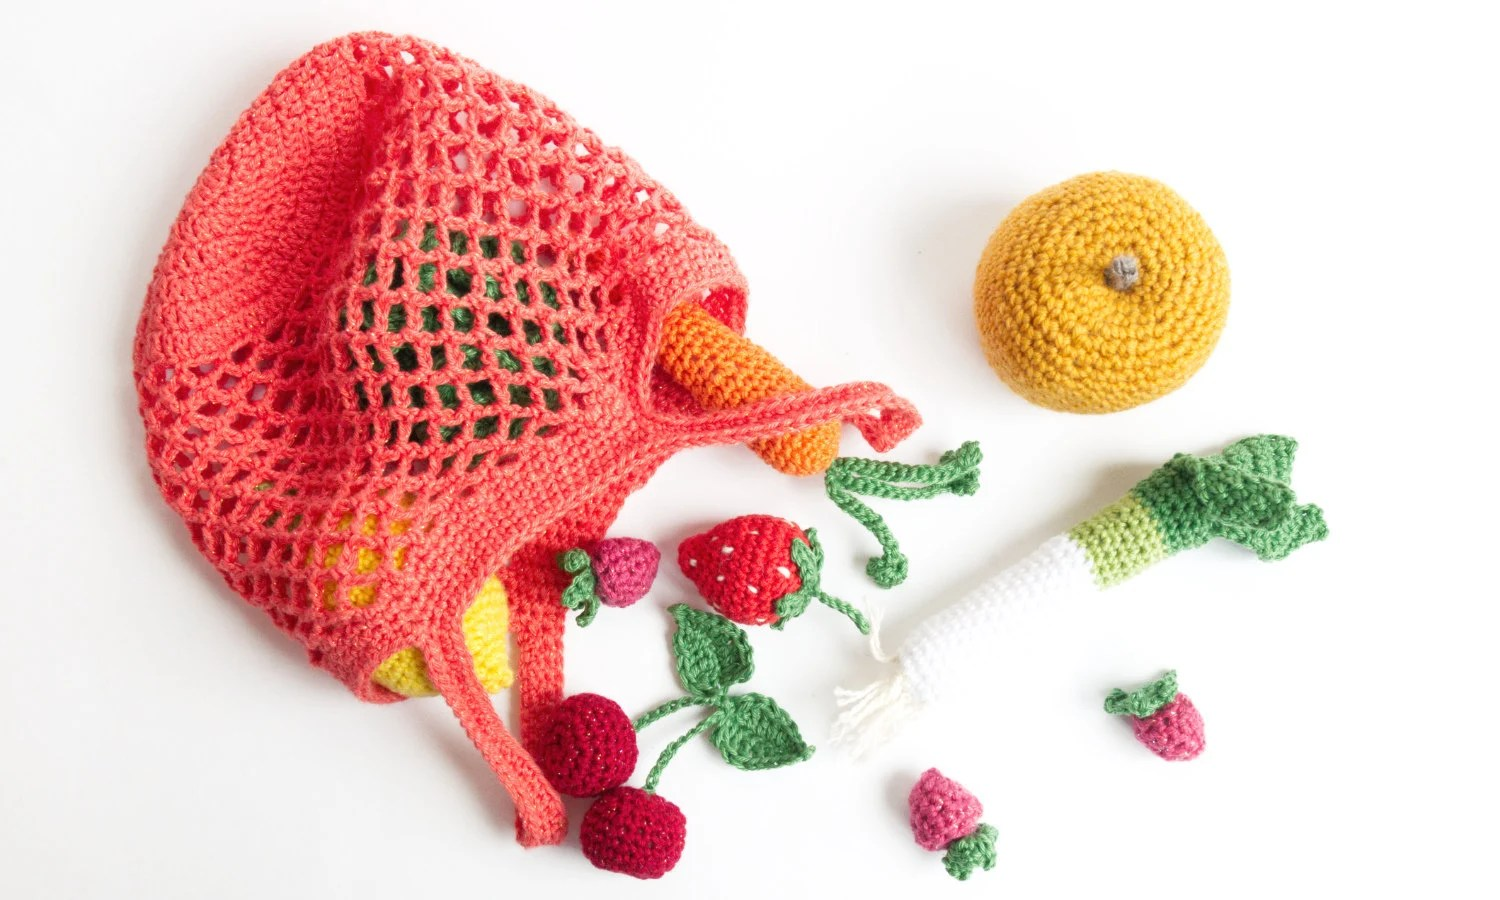 Strawberry crochet image 4